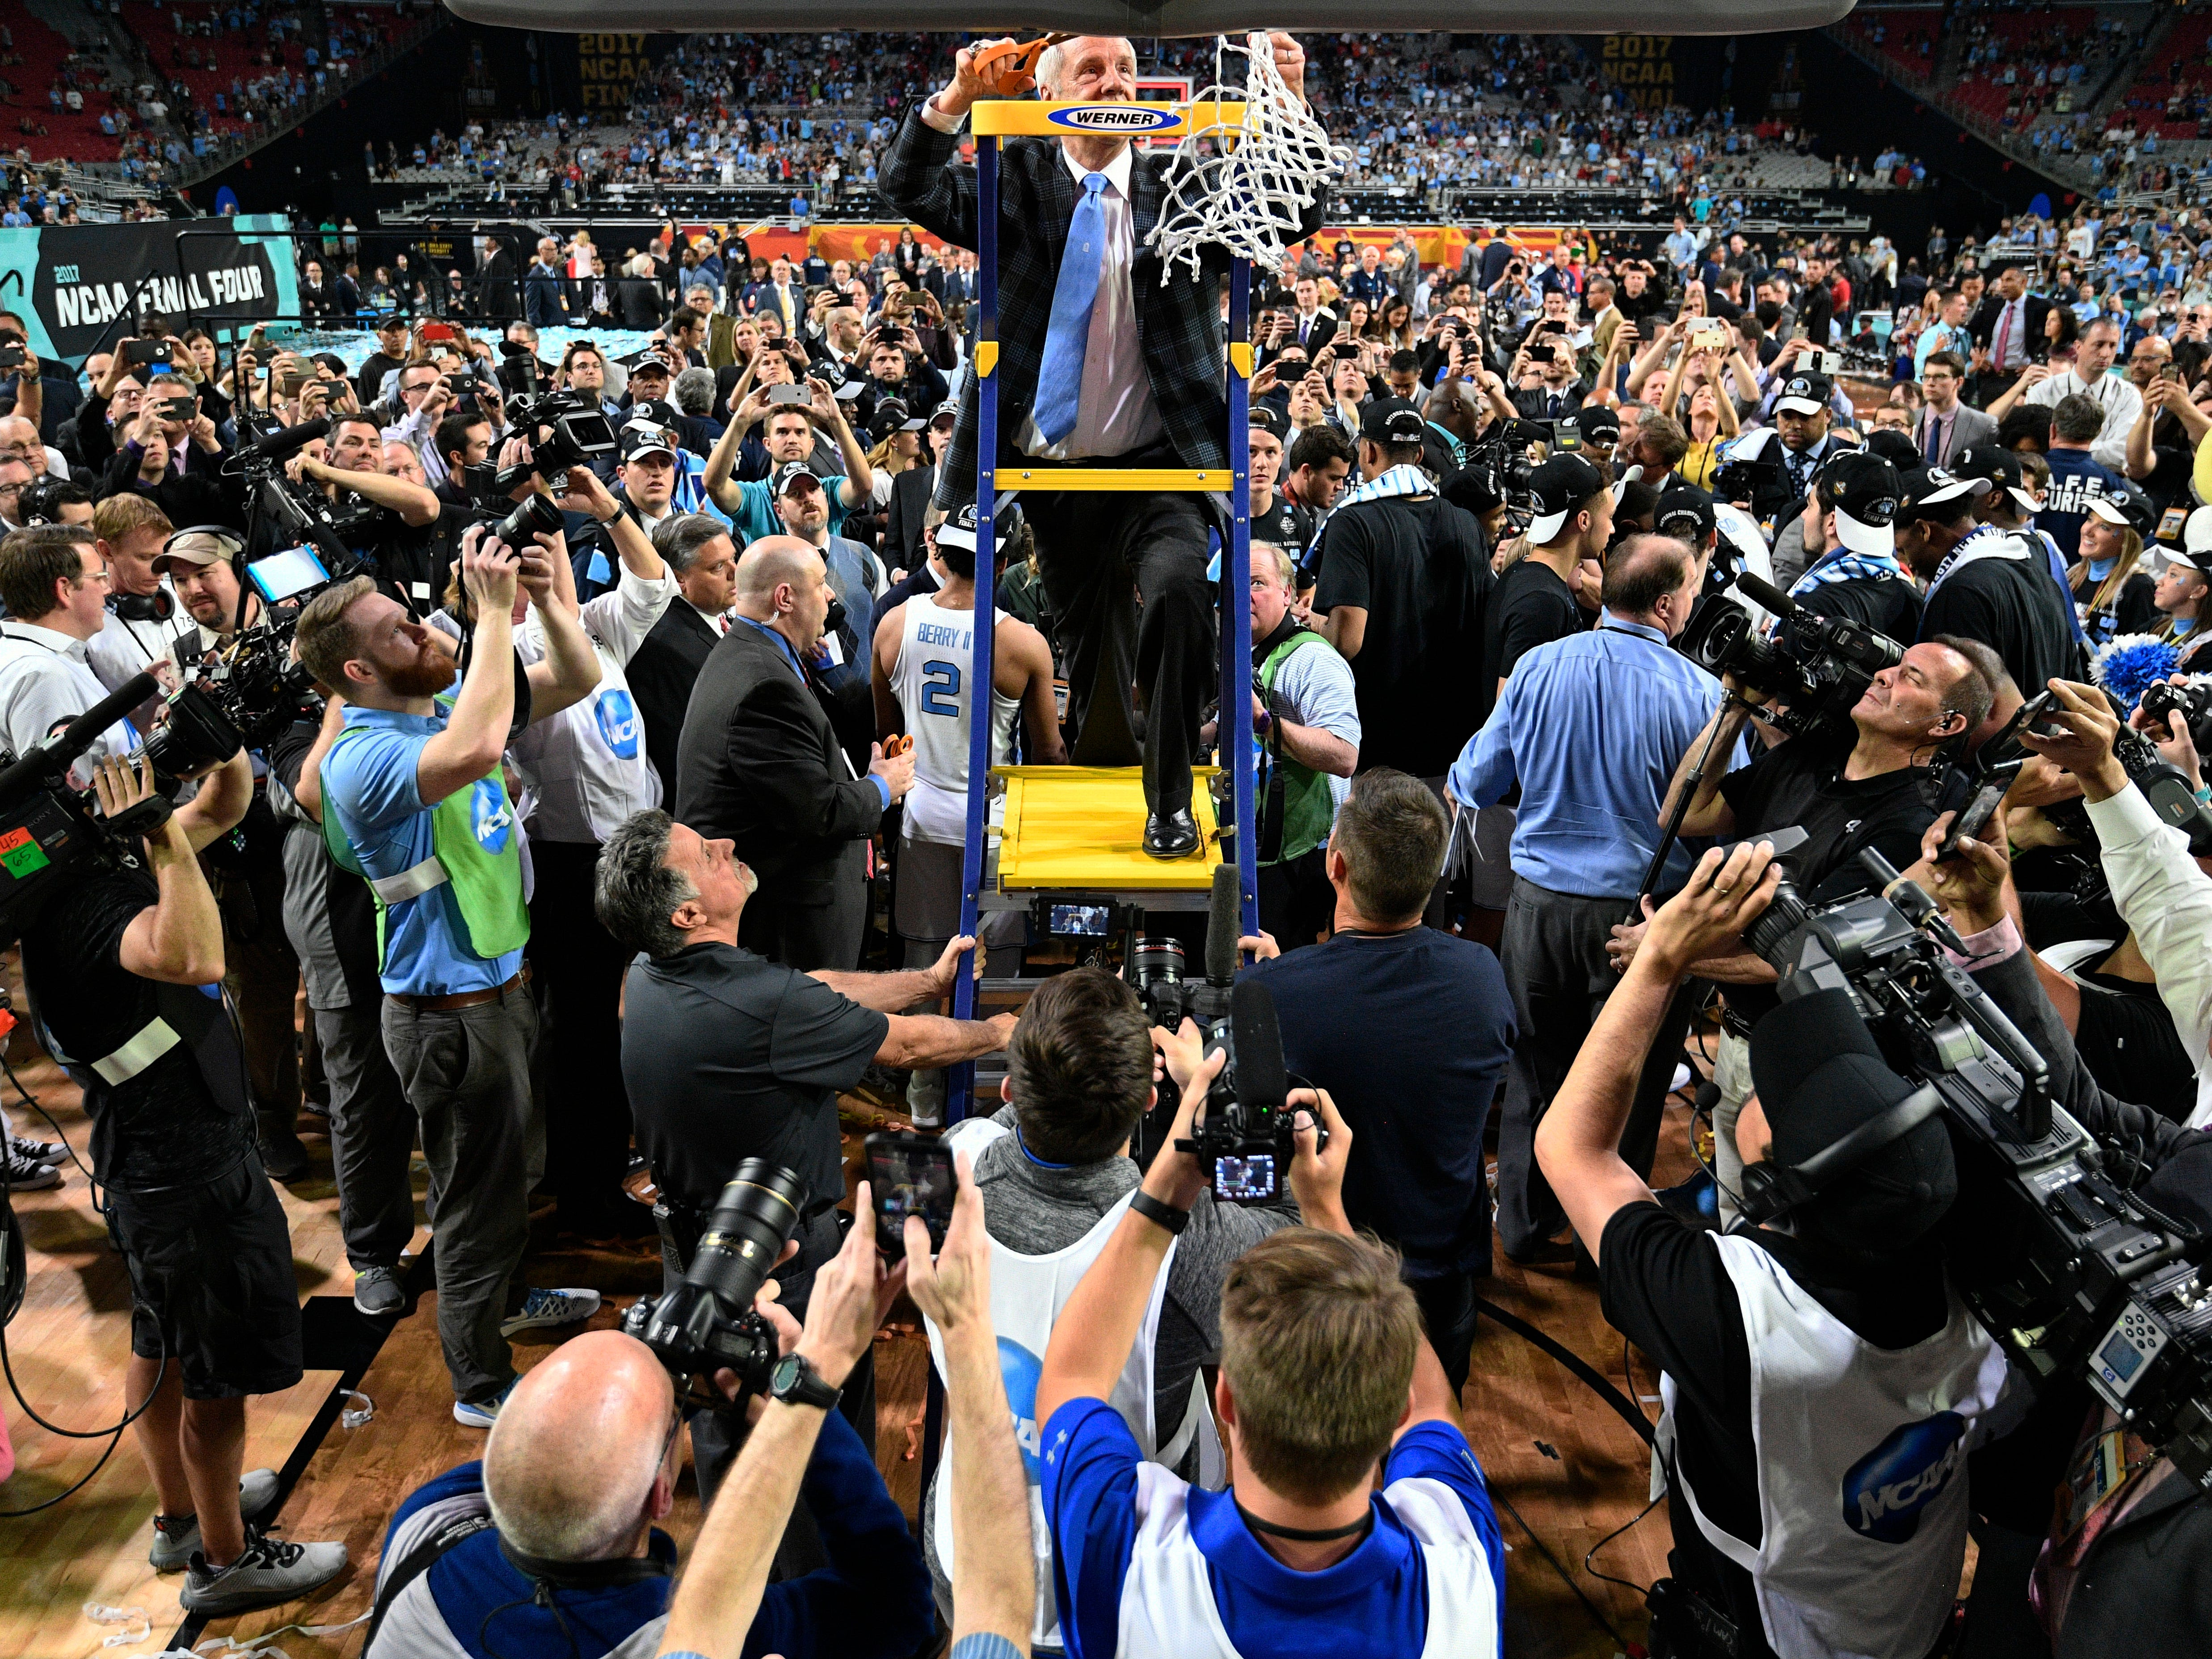 North Carolina head coach Roy Williams cuts the net after the finals of the Final Four NCAA college basketball tournament against Gonzaga, Monday, April 3, 2017, in Glendale, Ariz. North Carolina won 71-65. (AP Photo/Chris Steppig, Pool)